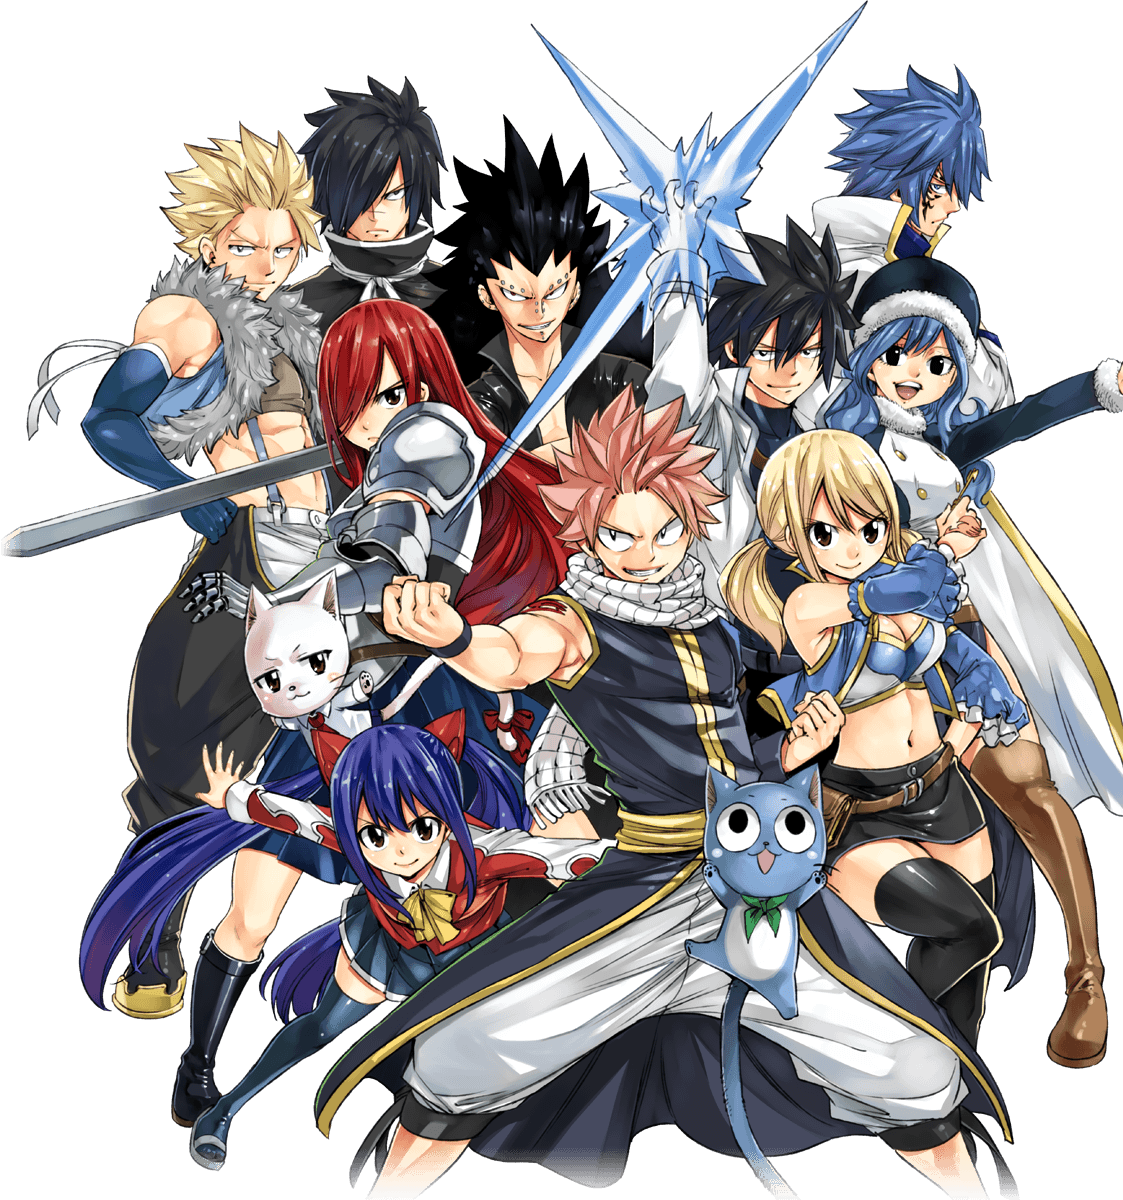 Fairy Tail 2020 Game Key Art in PNG